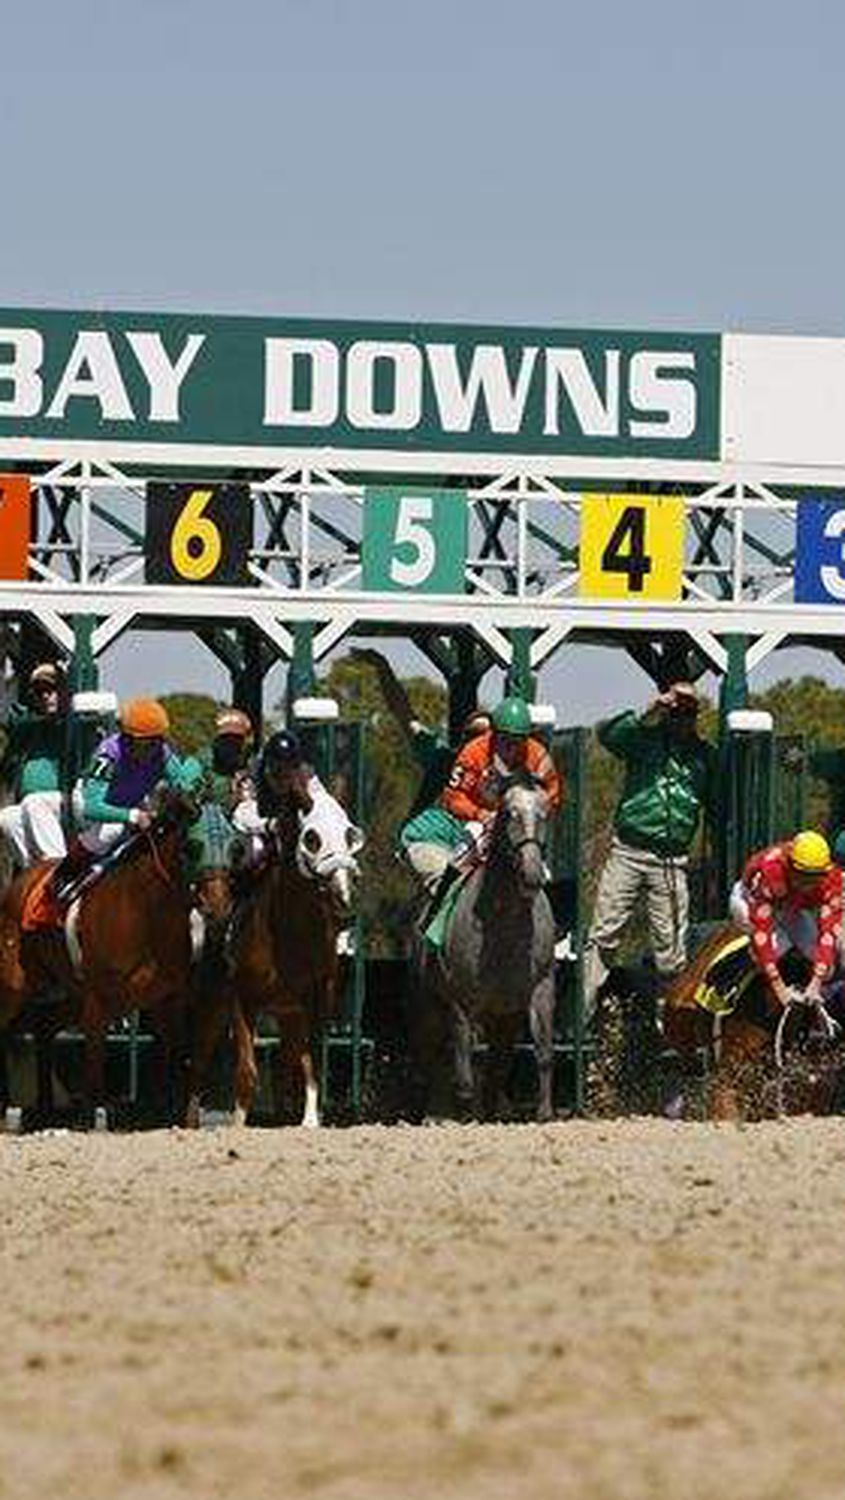 Tampa Bay Downs Closing Races To Fans After This Weekend Pertaining To Tampa Bay Downs Race Track Calendar